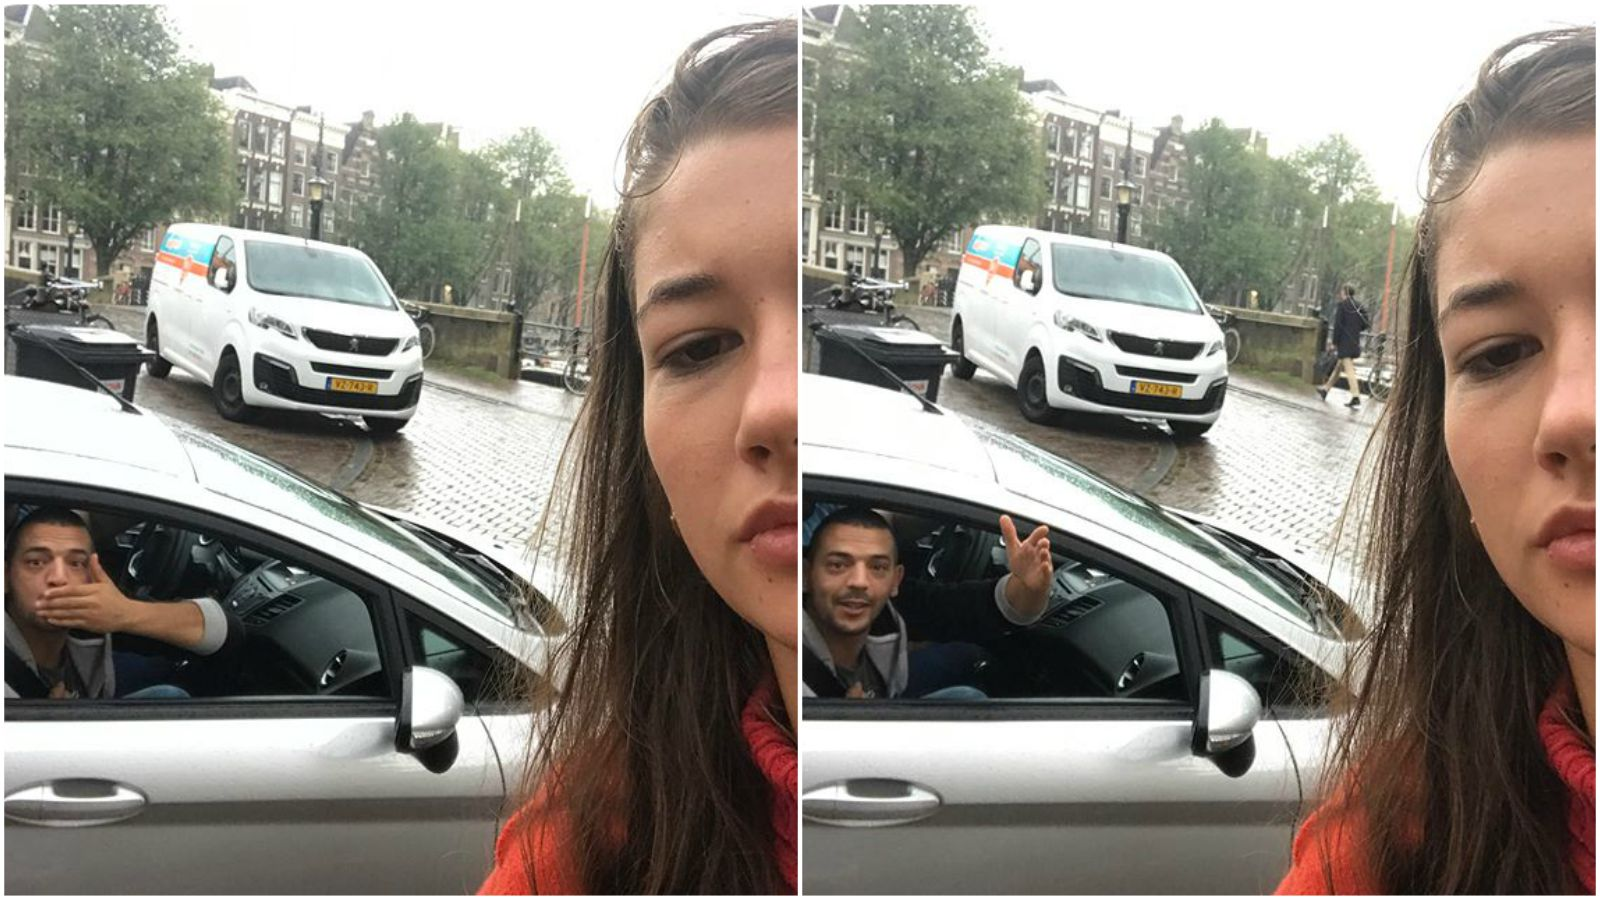 Woman Takes Catcalling Selfies with Her Catcallers and Posts Them to Instagram.